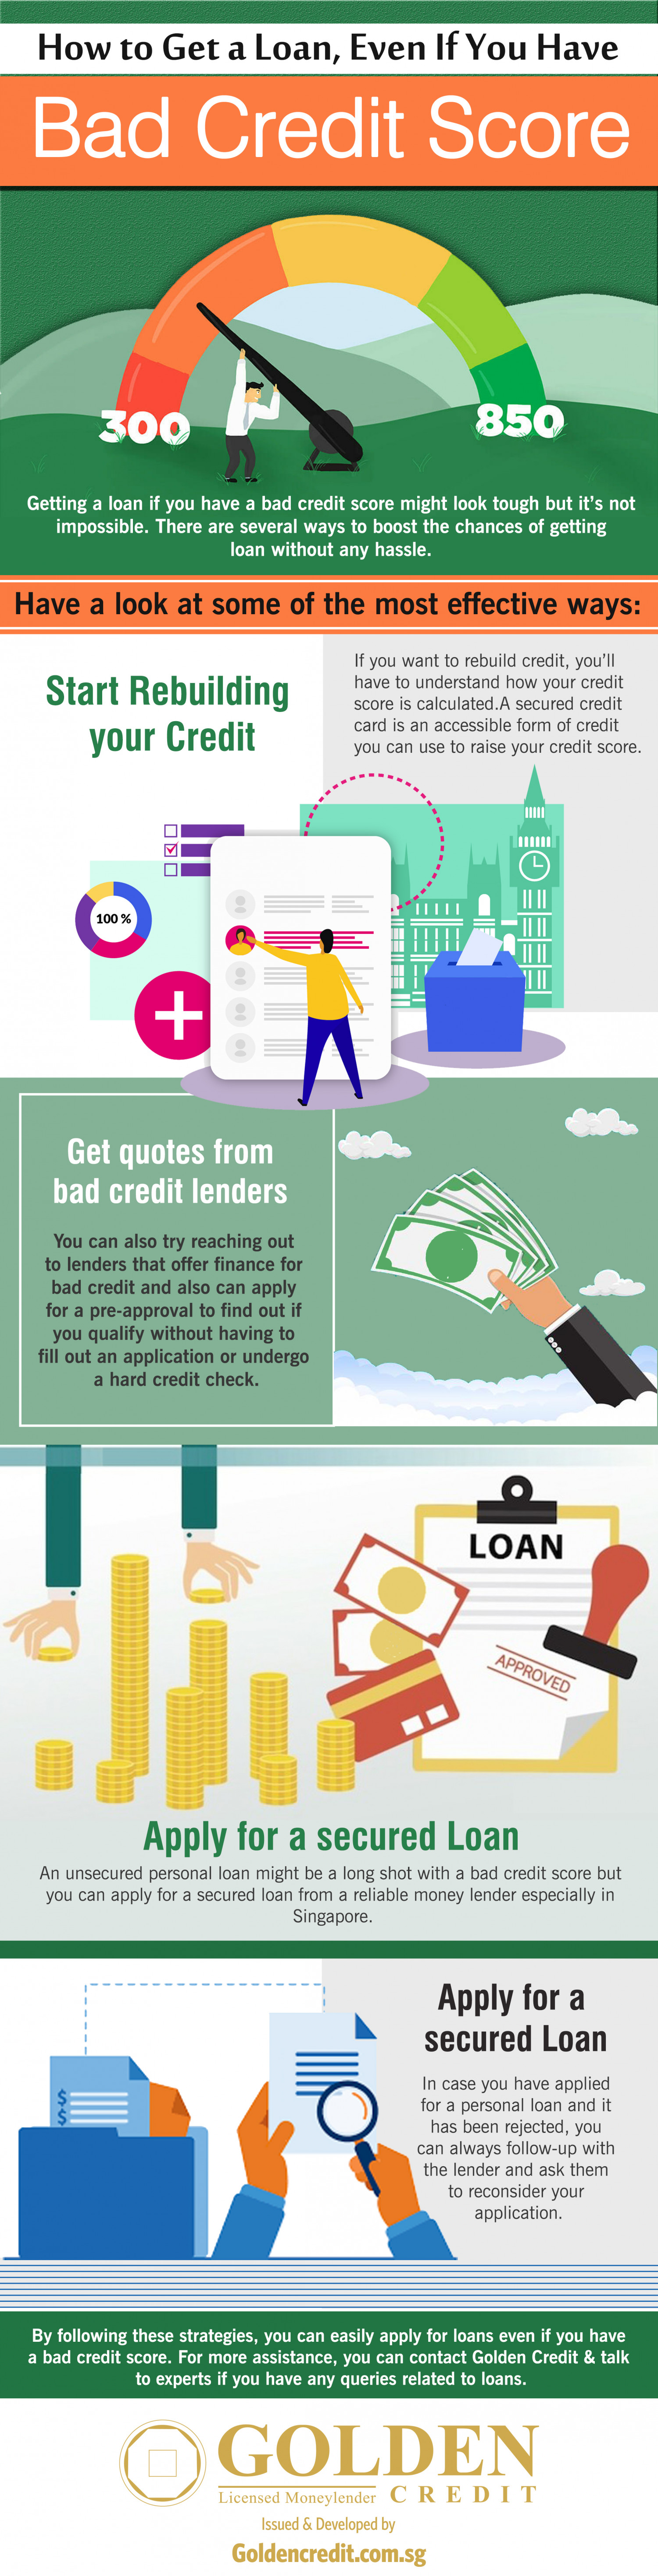 How to Get a Loan even if you have a Bad Credit Score Infographic